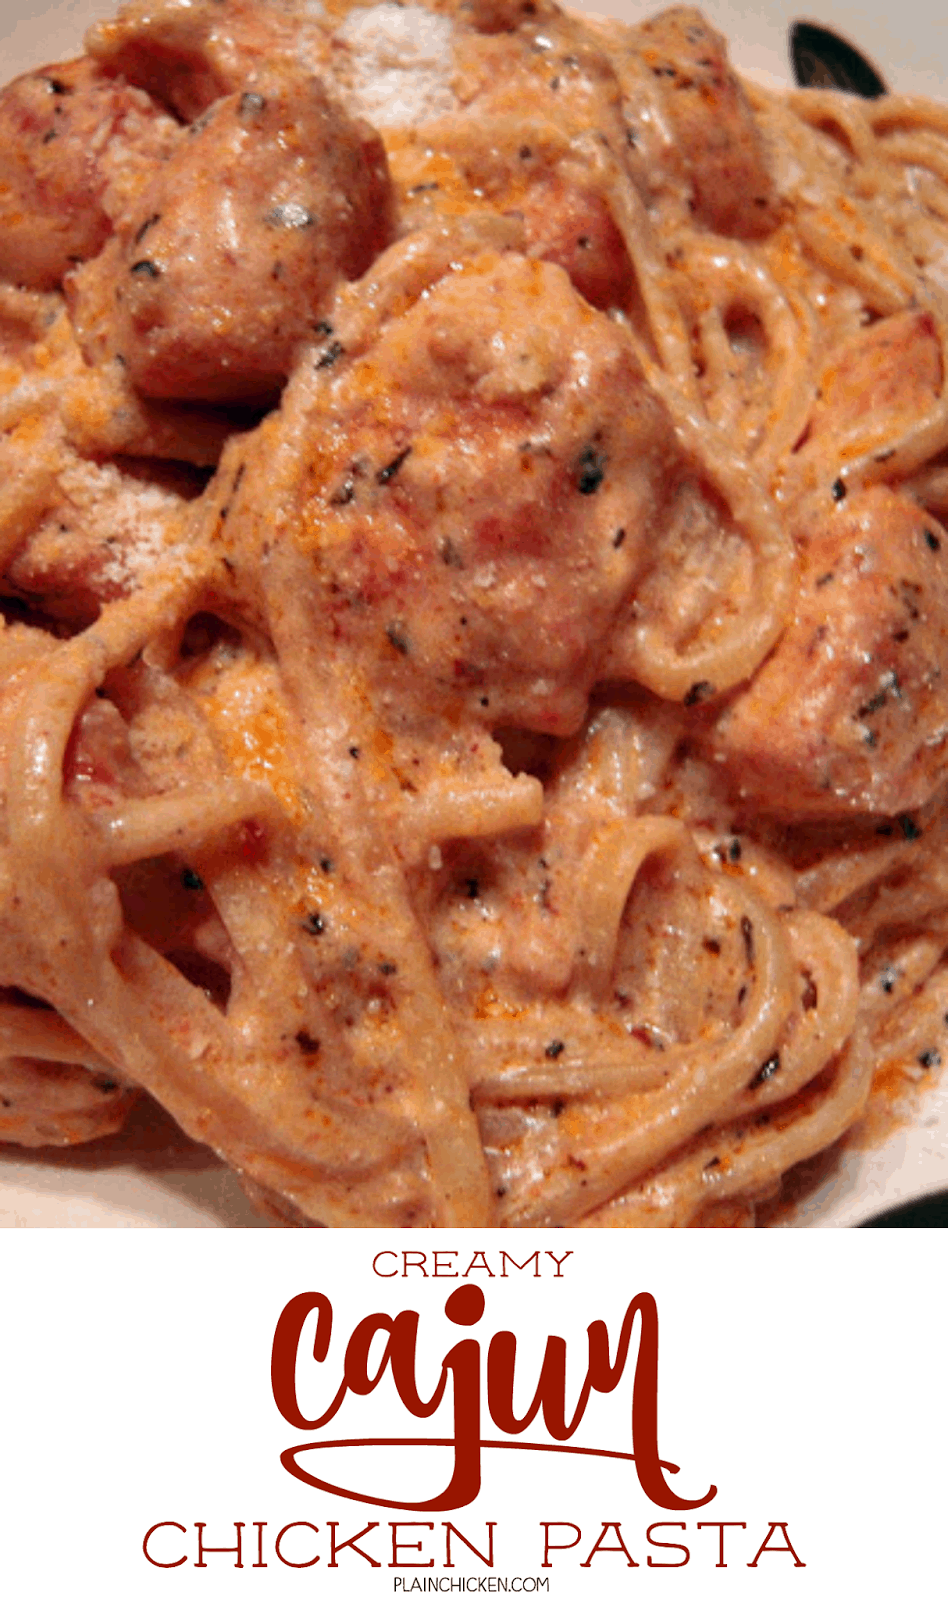 Creamy Cajun Chicken Pasta - THE BEST! Reminded me of Red Lobster's Cajun chicken pasta. Chicken, linguine, cajun seasoning, butter, heavy cream, sun-dried tomatoes, basil, garlic and parmesan cheese. Ready in about 15 minutes! Super quick and super delicious! Everyone always cleans their plate!